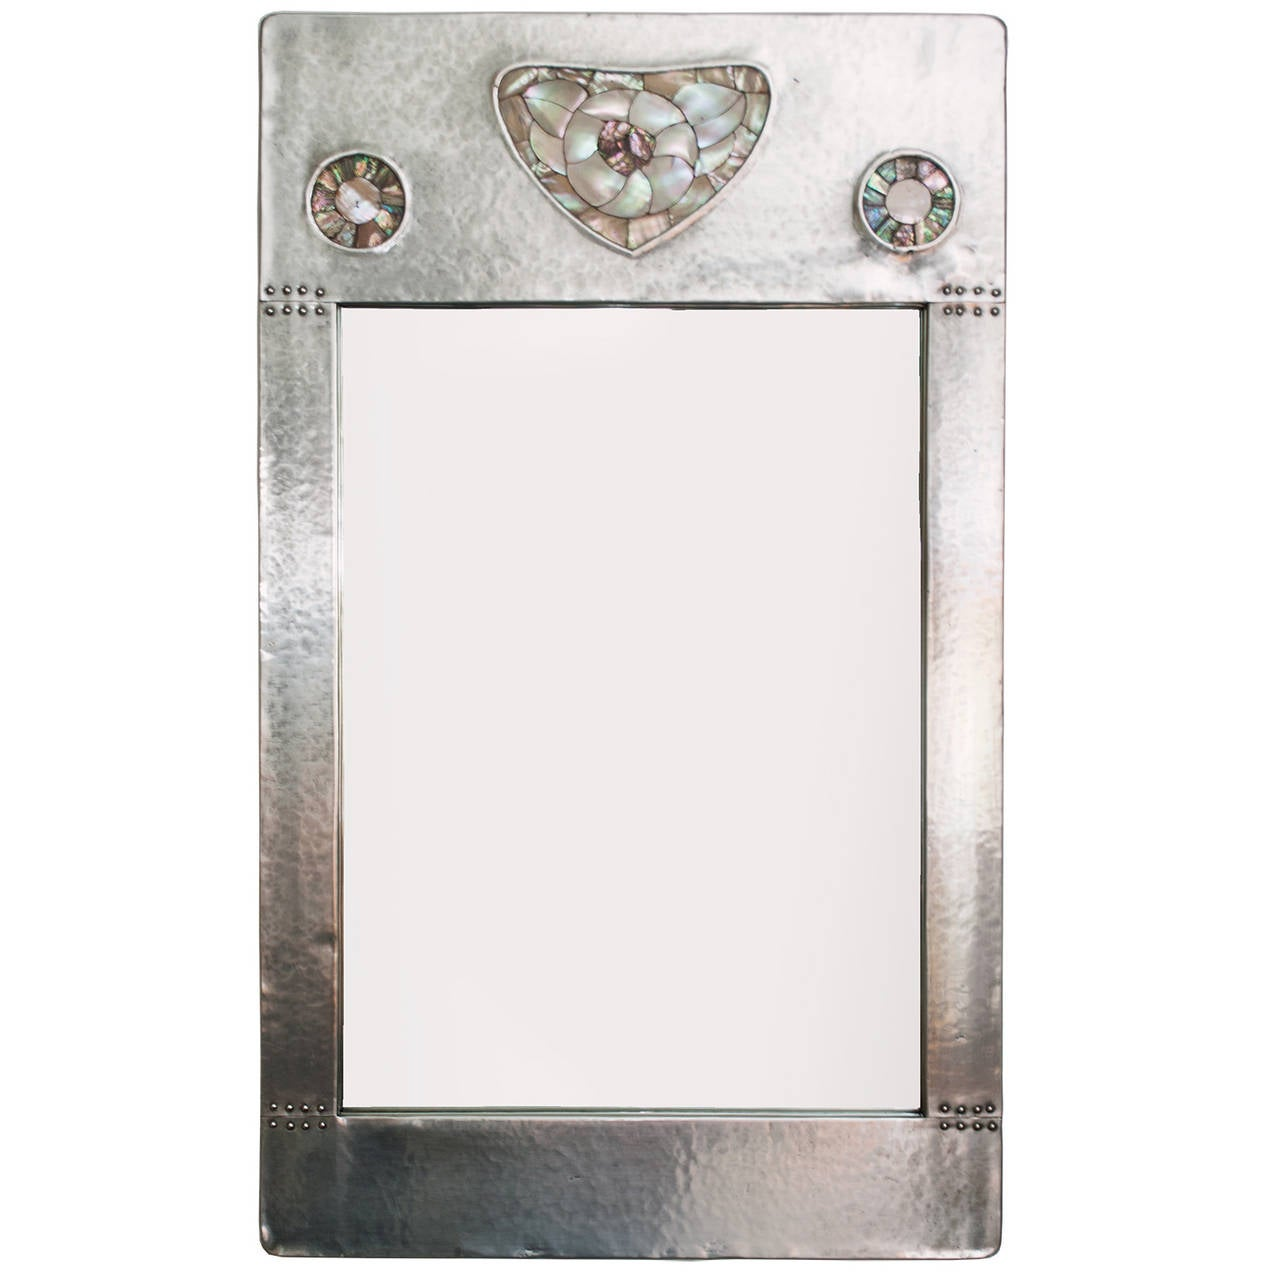 Arts and crafts mirrors - Swedish Arts Crafts Pewter Mirror With Mother Of Pearl Decorations